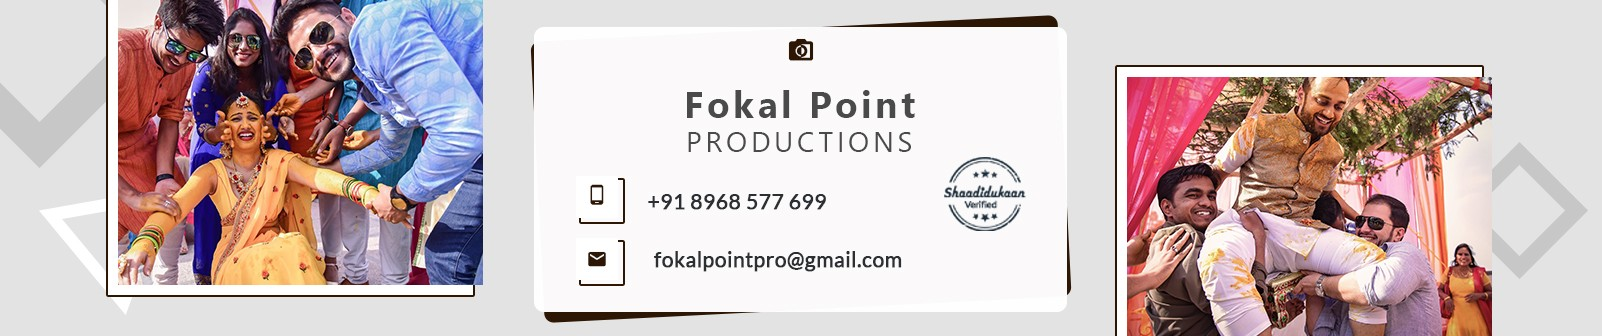 Fokal Point Production